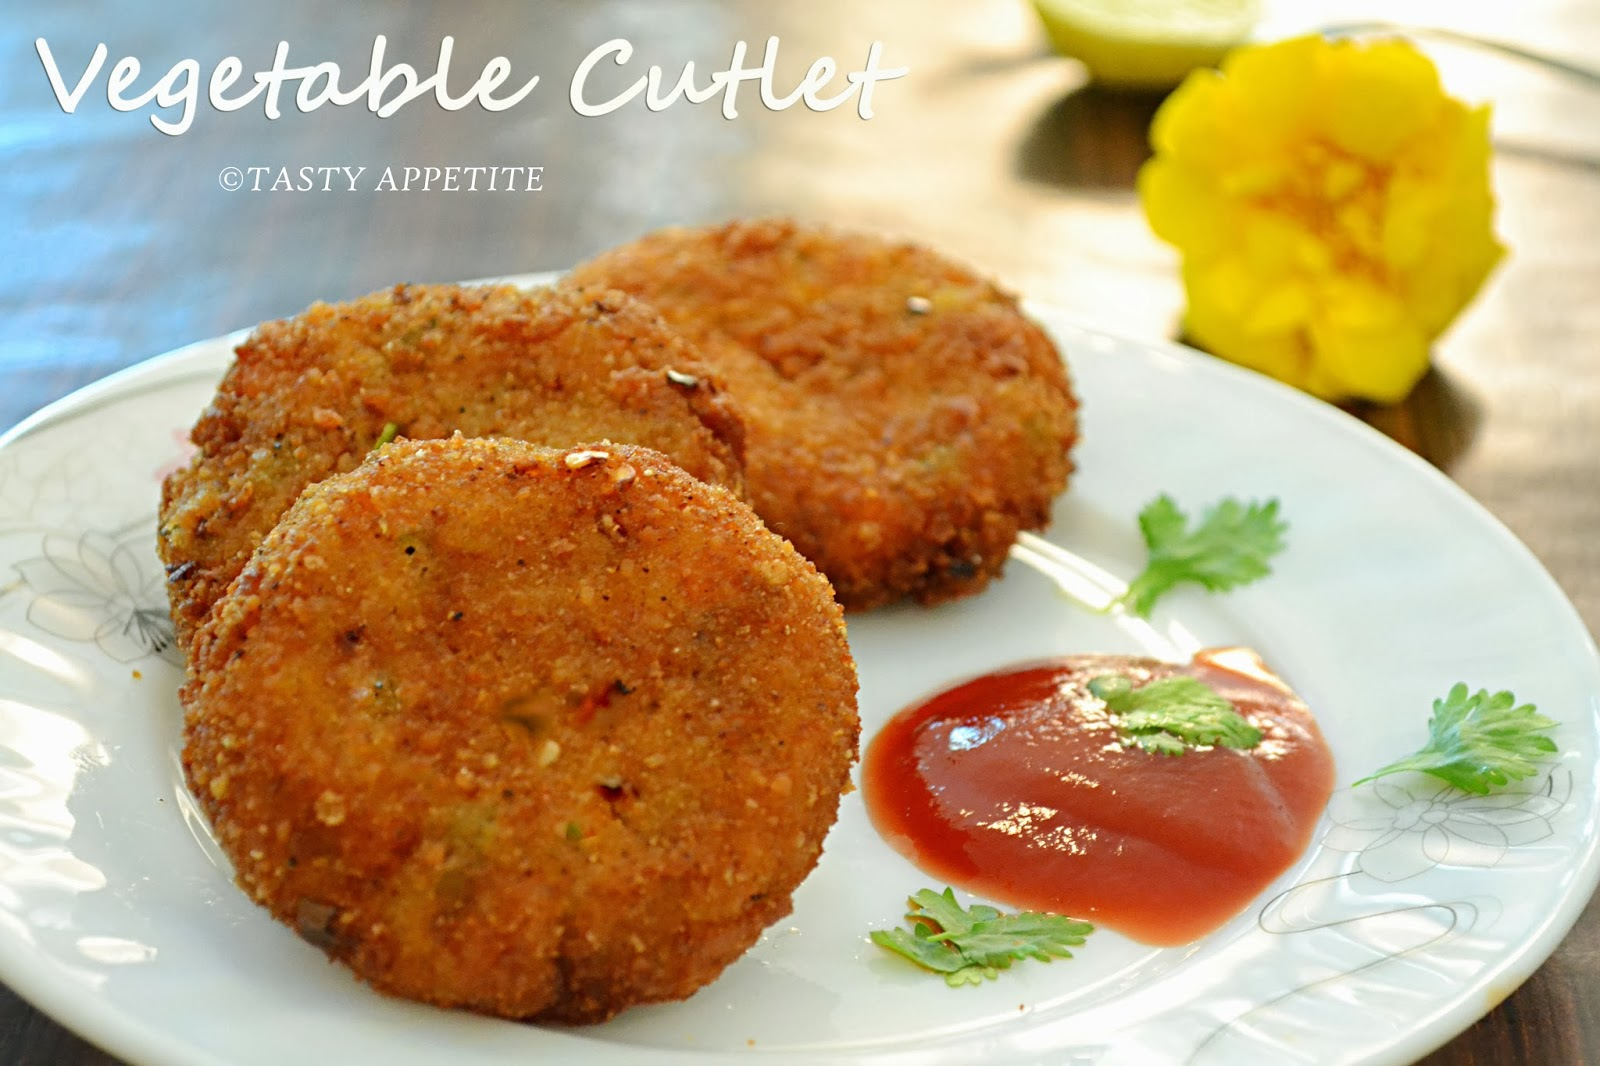 Vegetable cutlet recipe how to make vegetable cutlet step by vegetable cutlet recipe how to make vegetable cutlet step by step recipe kids friendly snacks forumfinder Gallery